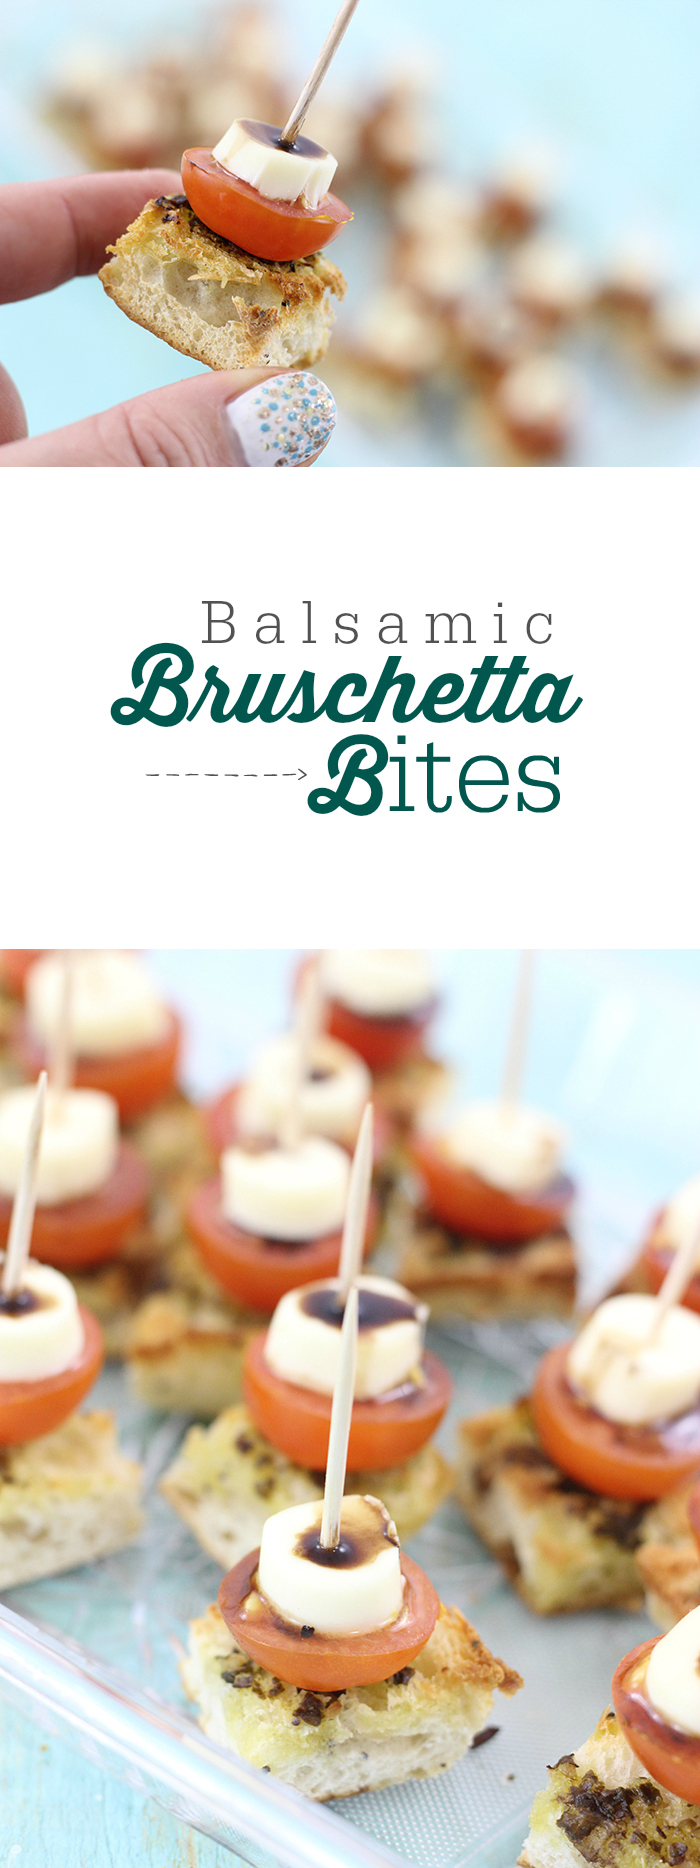 Balsamic Bruschetta Bites. The perfect mouth sized appetizer, perfect for multitasking: eating and watching the big game.